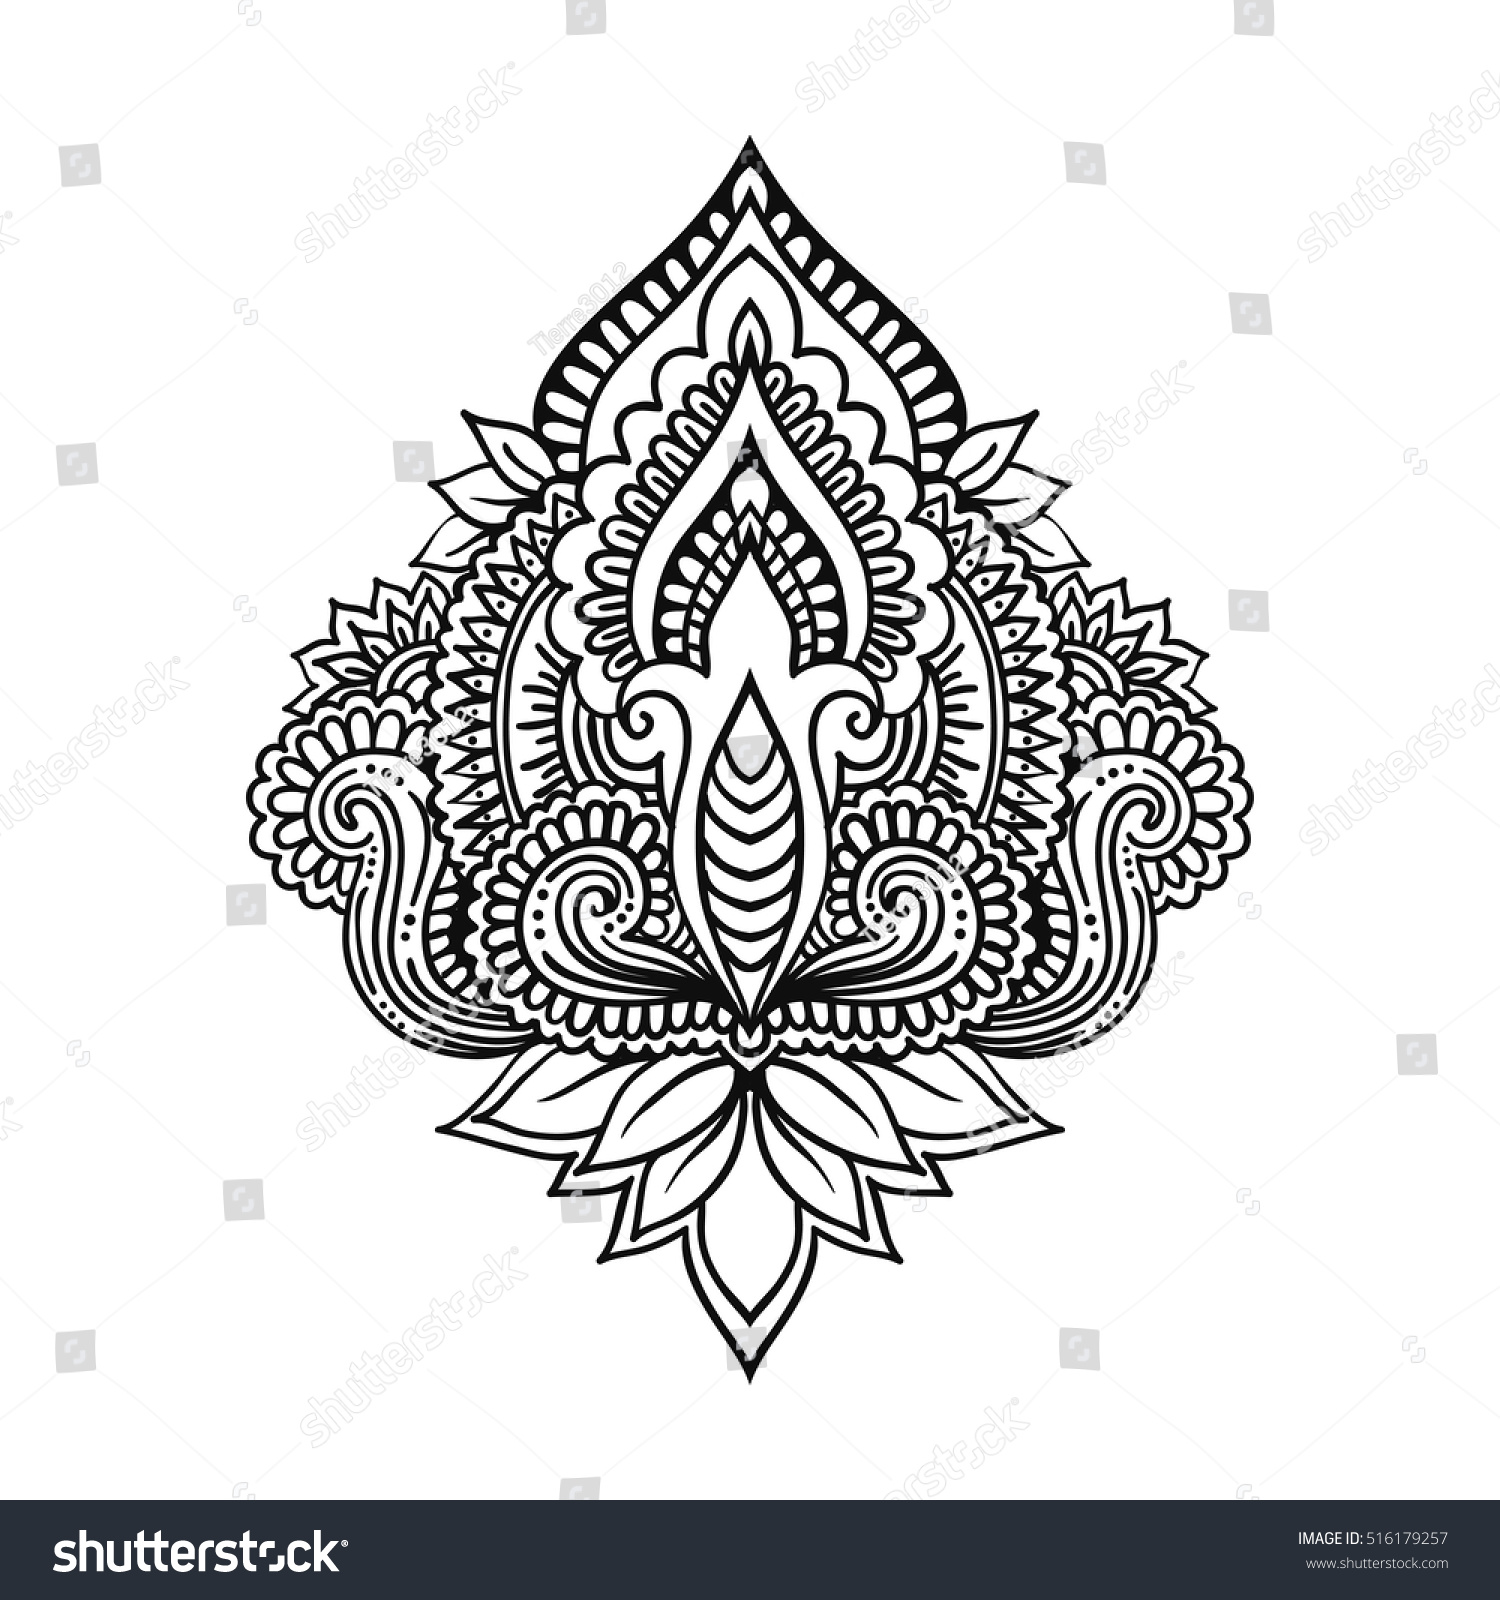 Vector Ornamental Lotus Flower Ethnic Art Patterned Indian Paisley